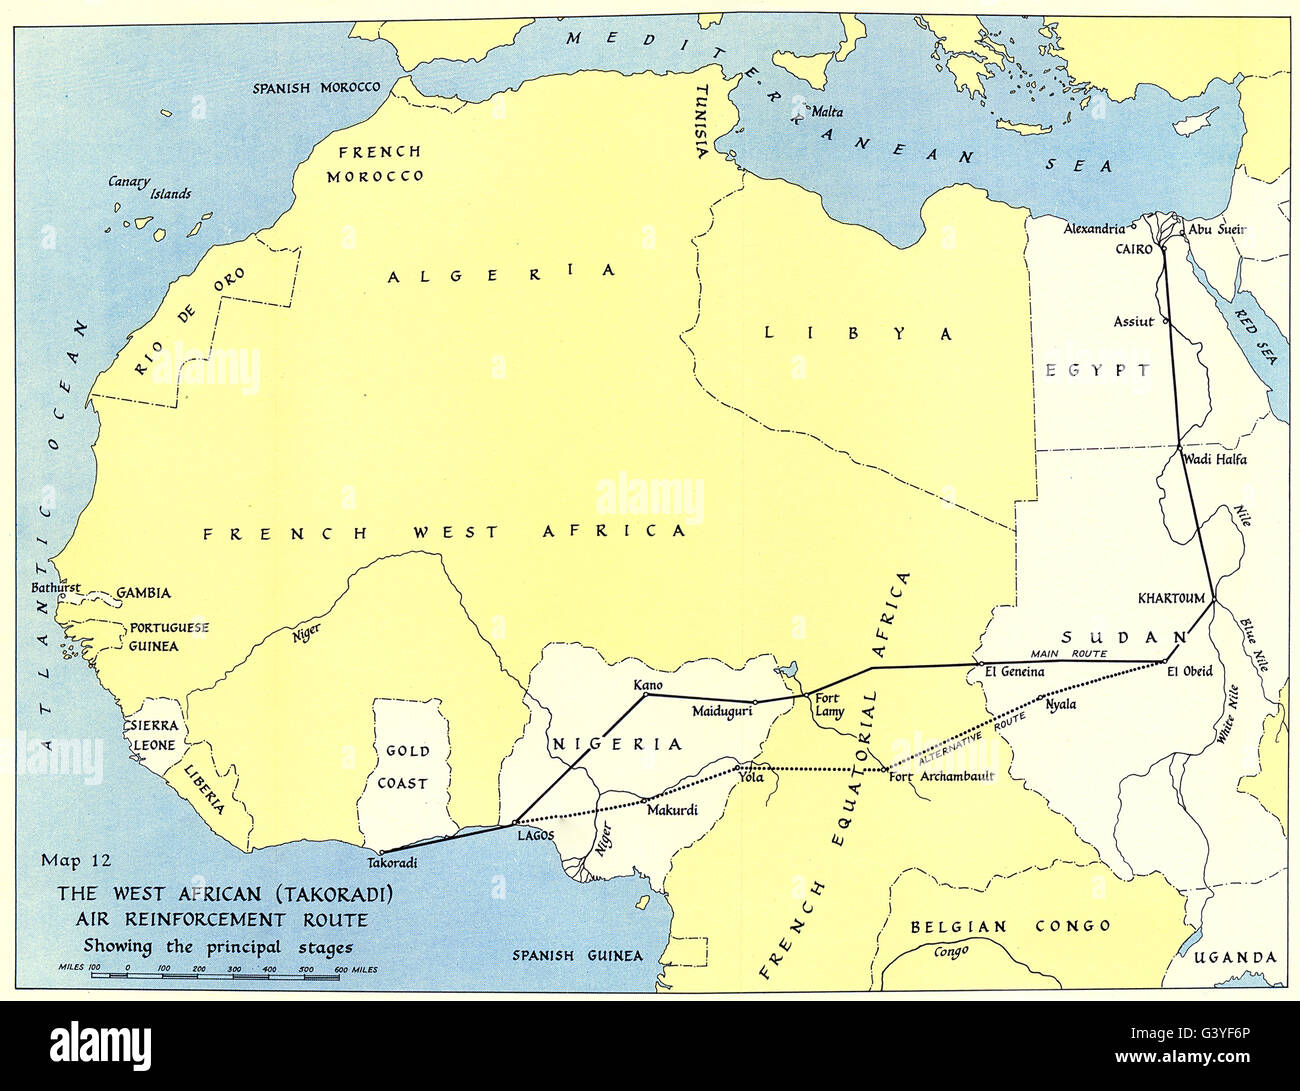 World war 2 west africa middle east takoradi air reinforcement world war 2 west africa middle east takoradi air reinforcement route 1954 map gumiabroncs Image collections